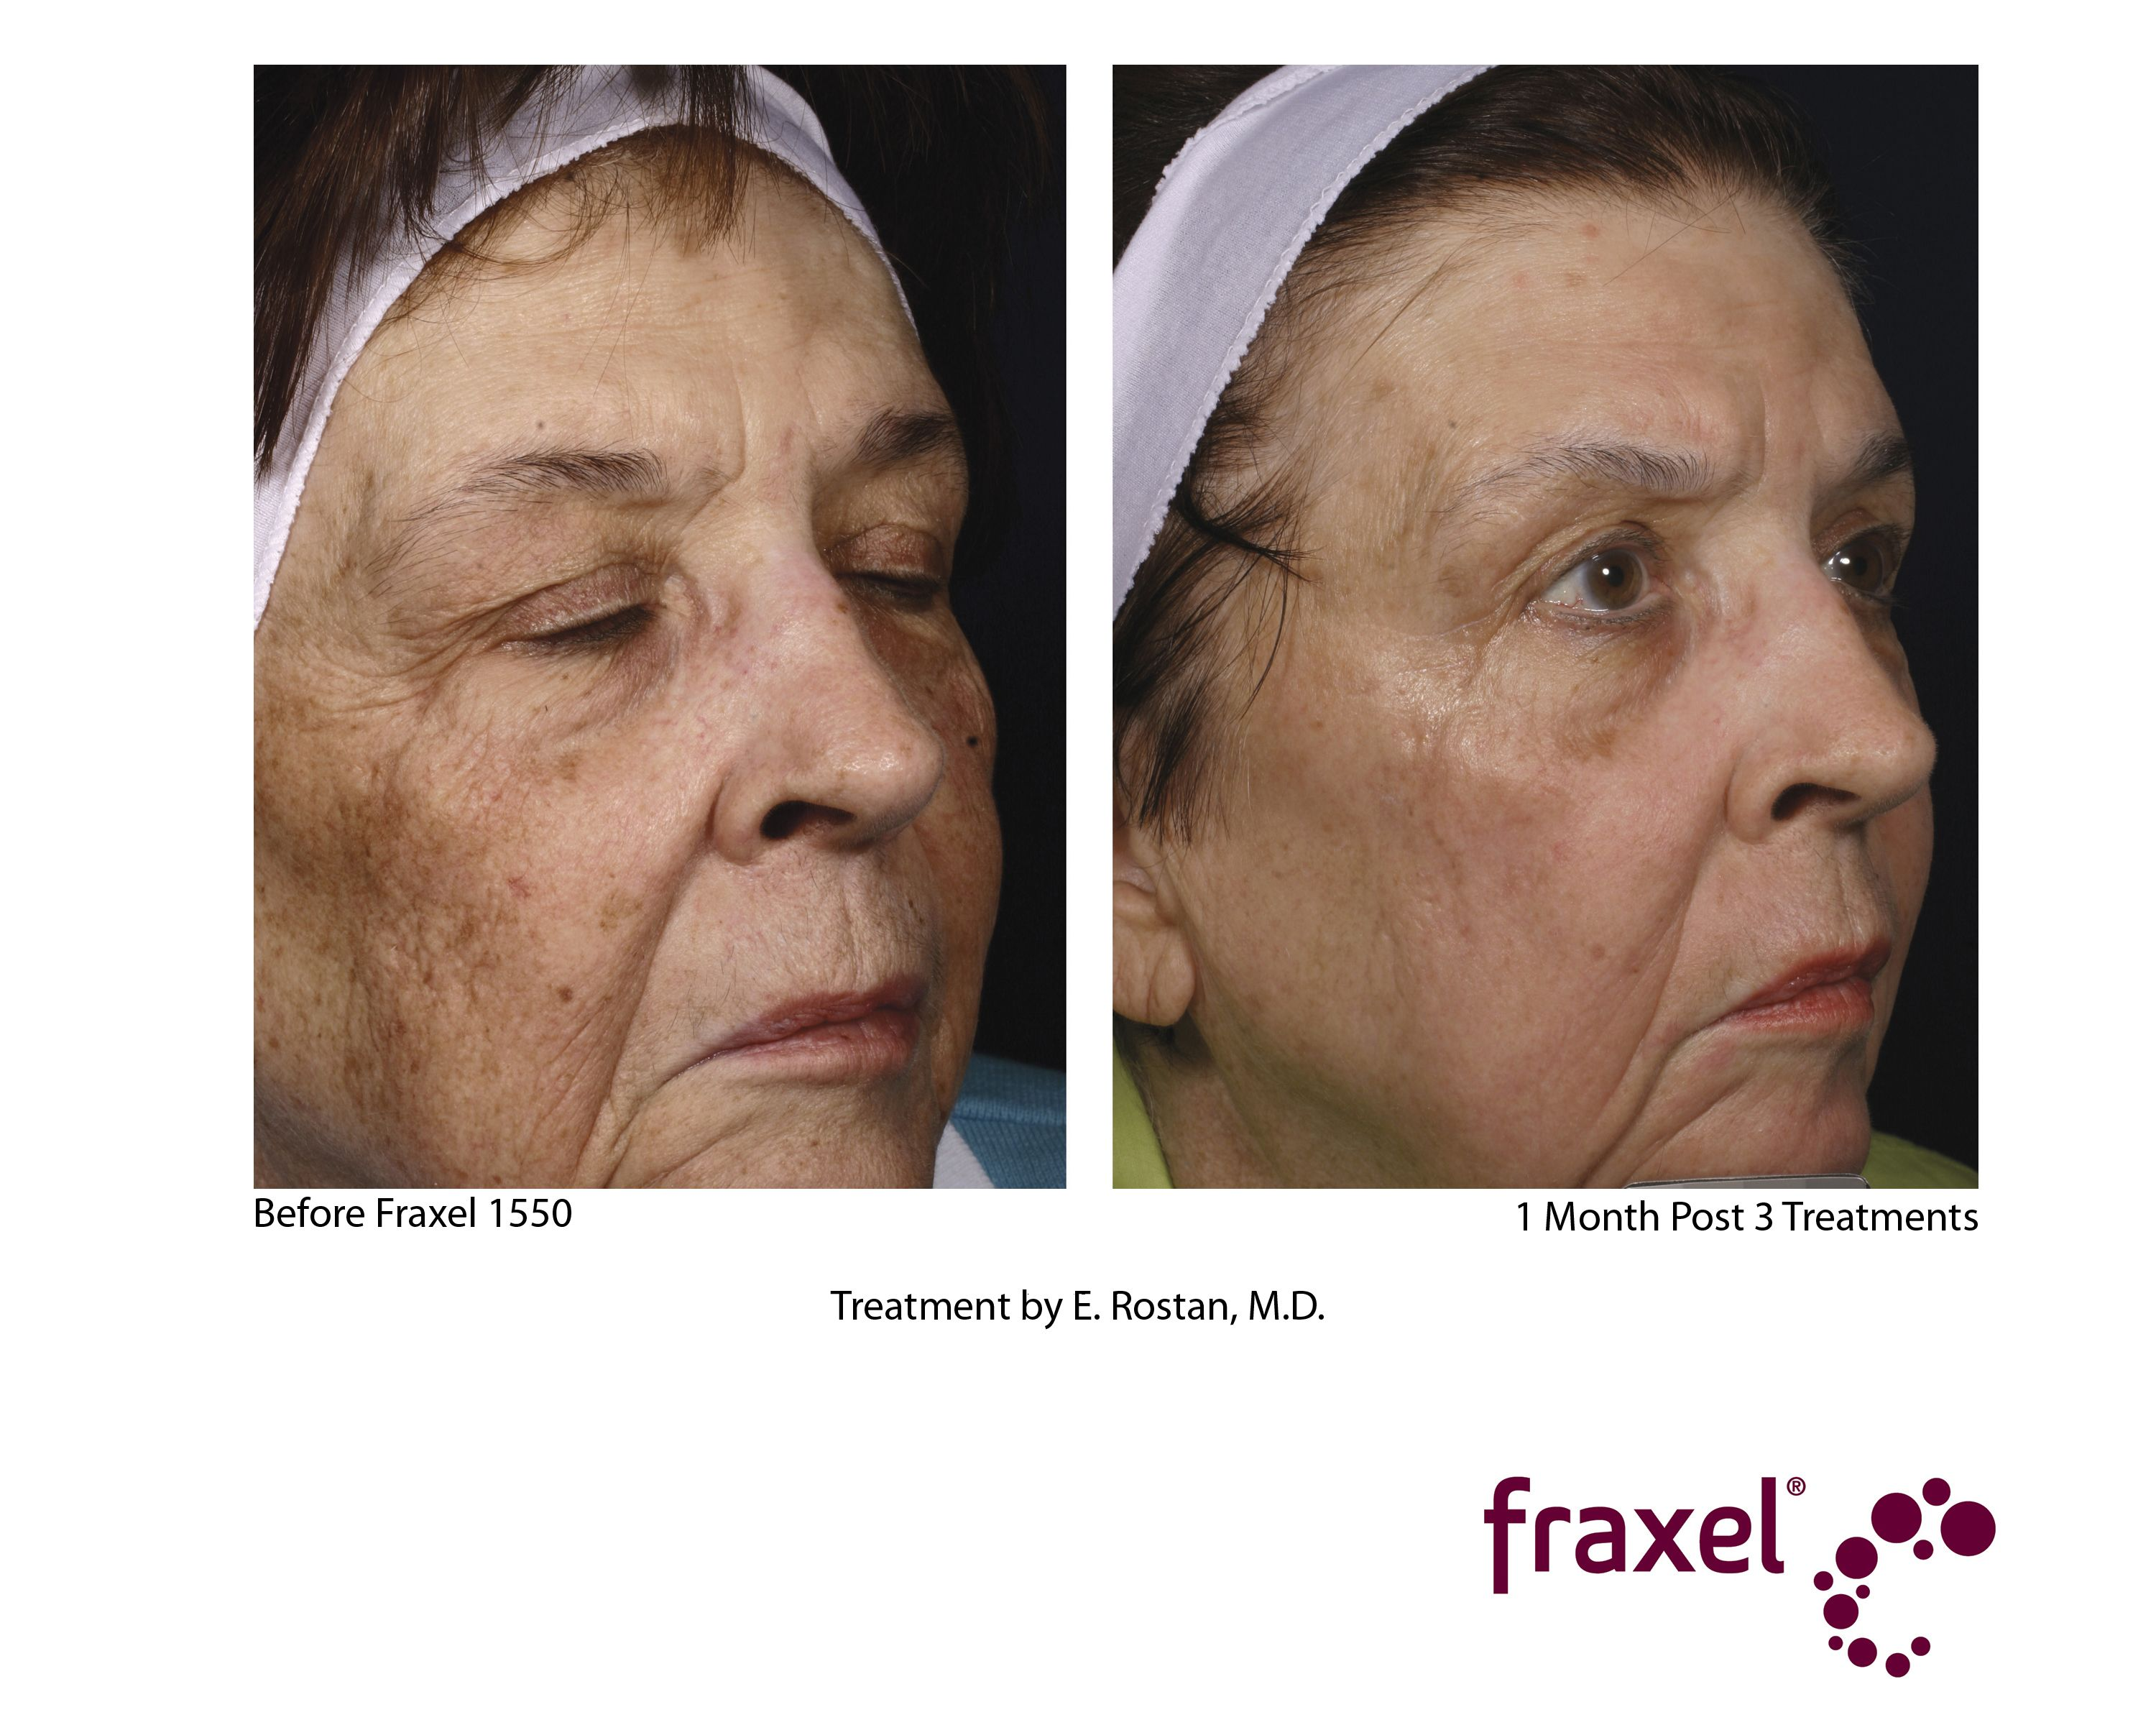 One Month Post 3 Treatments After Fraxel 1550